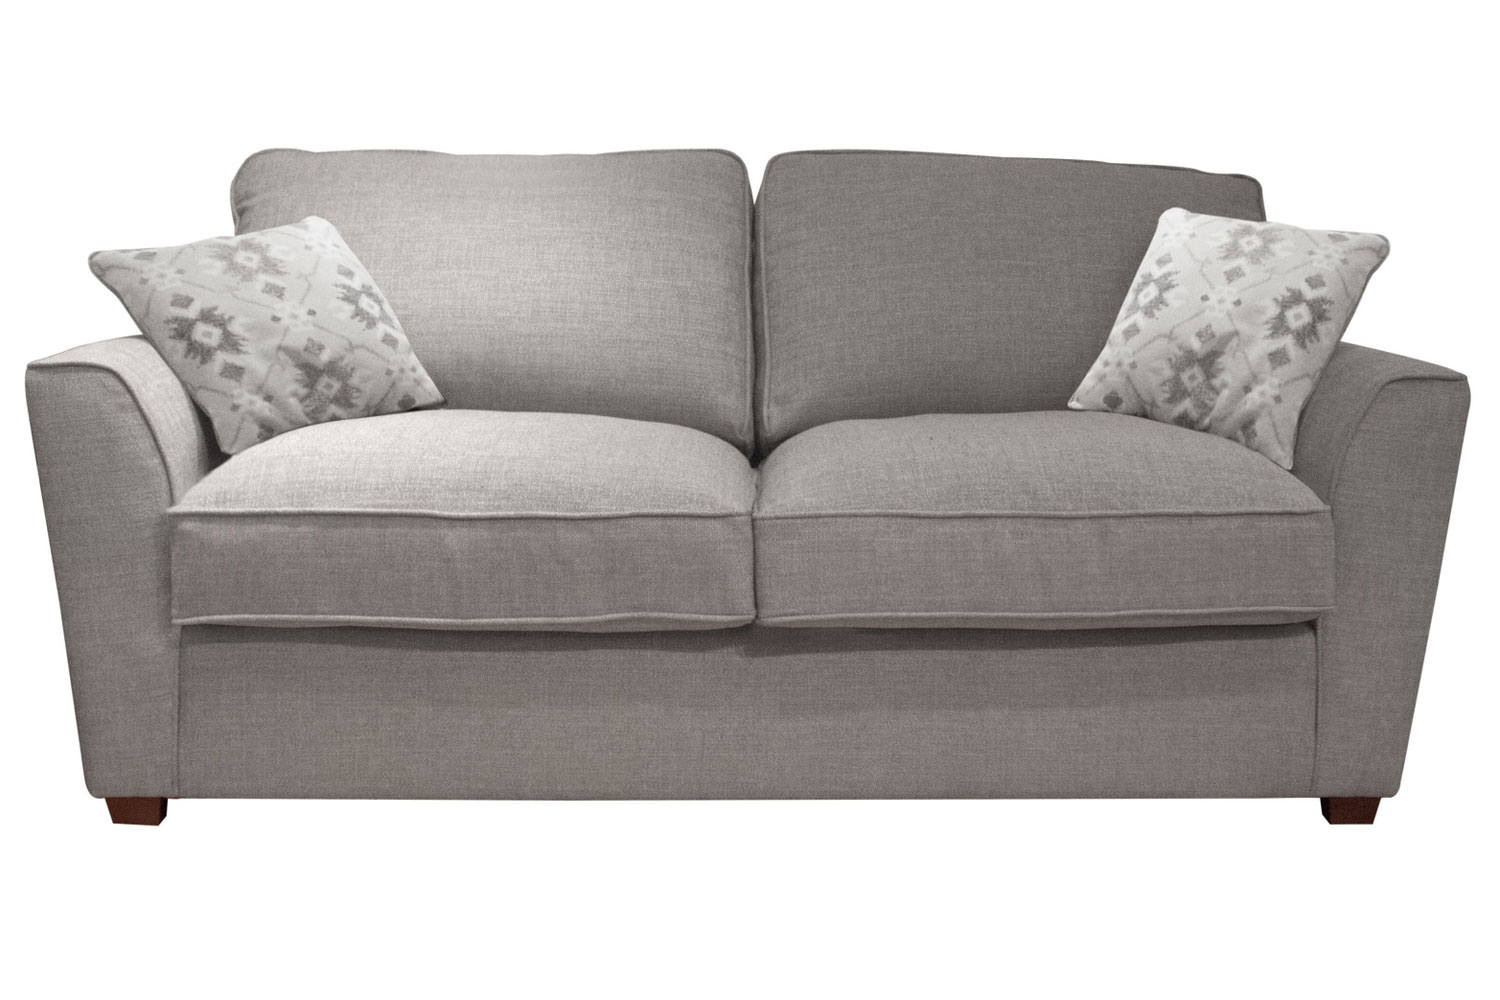 Tips For Caring The Upholstery Of Sofas Home